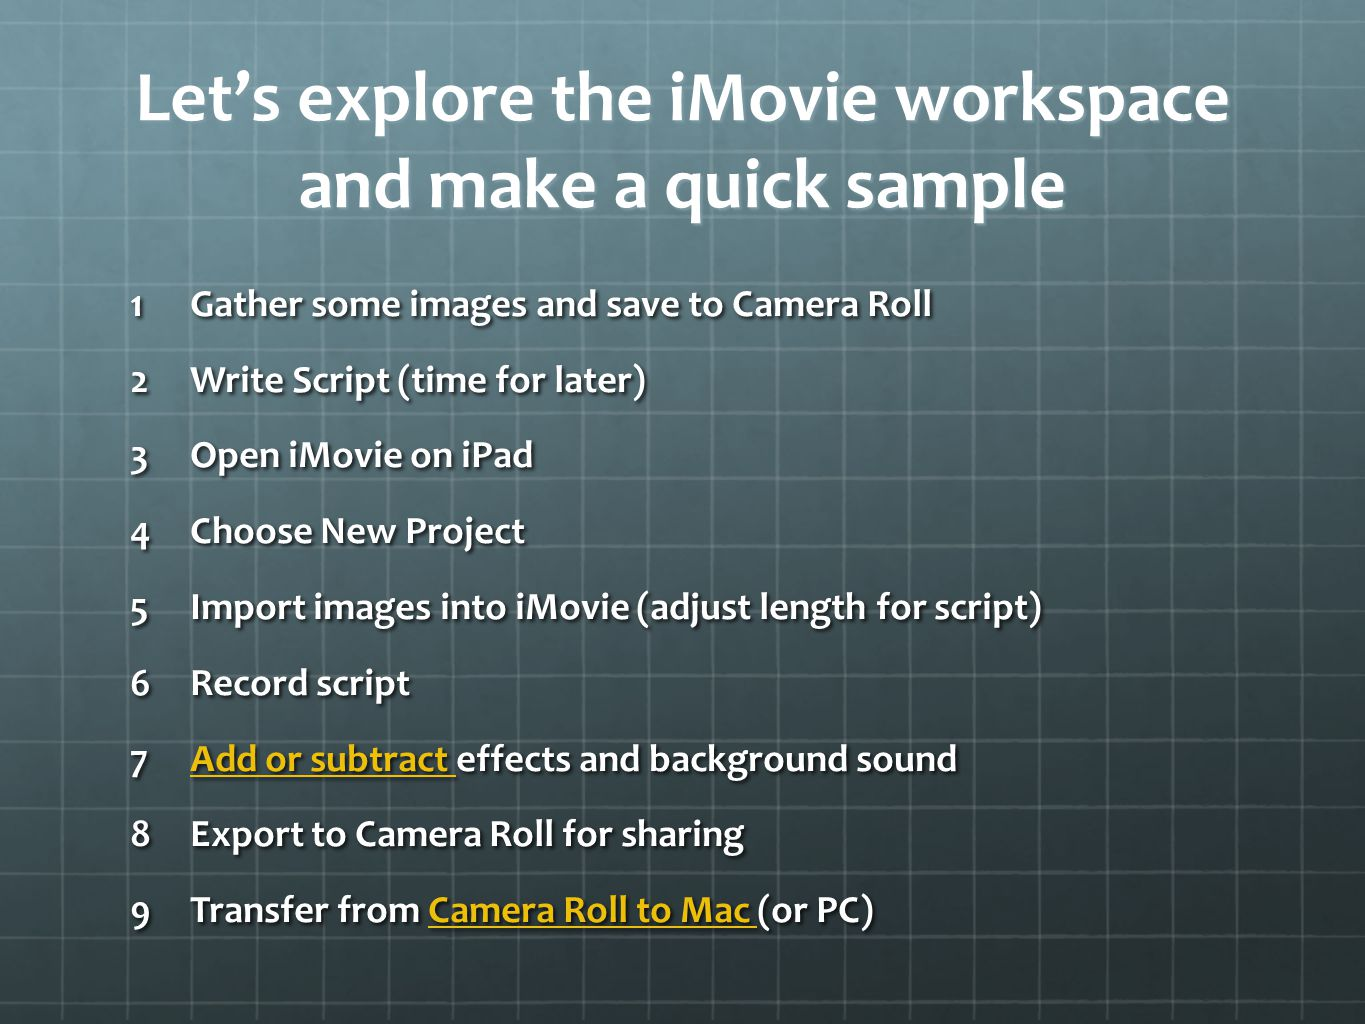 Let's explore the iMovie workspace and make a quick sample 1Gather some images and save to Camera Roll 2Write Script (time for later) 3Open iMovie on iPad 4Choose New Project 5Import images into iMovie (adjust length for script) 6Record script 7Add or subtract effects and background sound Add or subtract Add or subtract 8Export to Camera Roll for sharing 9Transfer from Camera Roll to Mac (or PC) Camera Roll to Mac Camera Roll to Mac